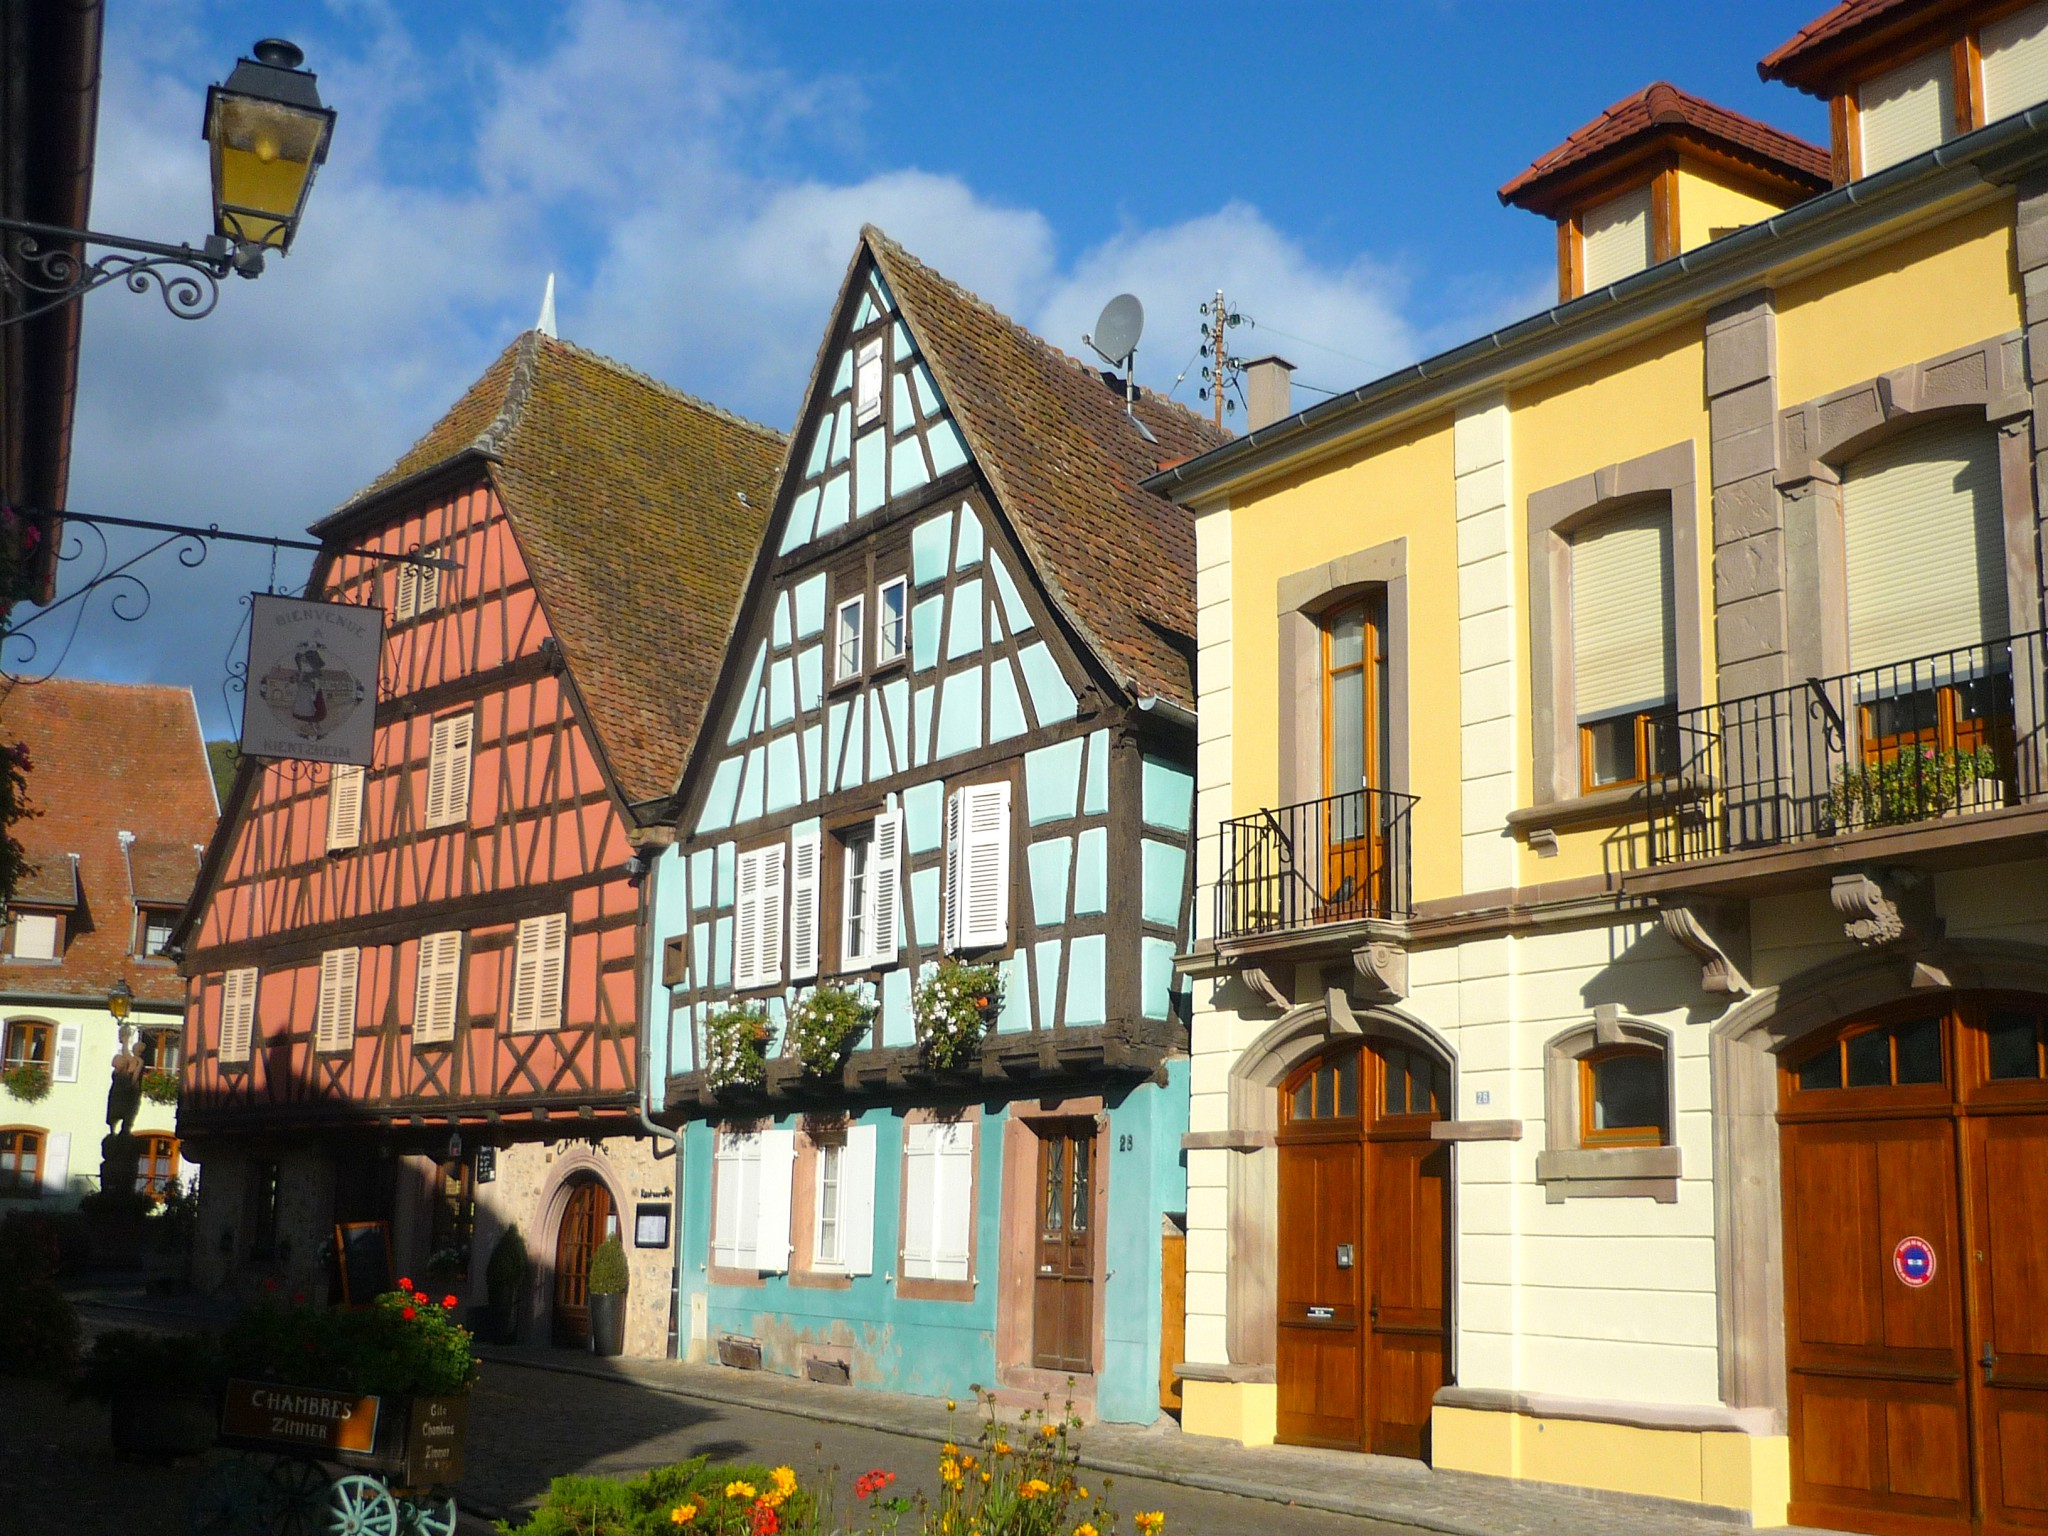 Half-timbered houses in Kienthzheim © French Moments